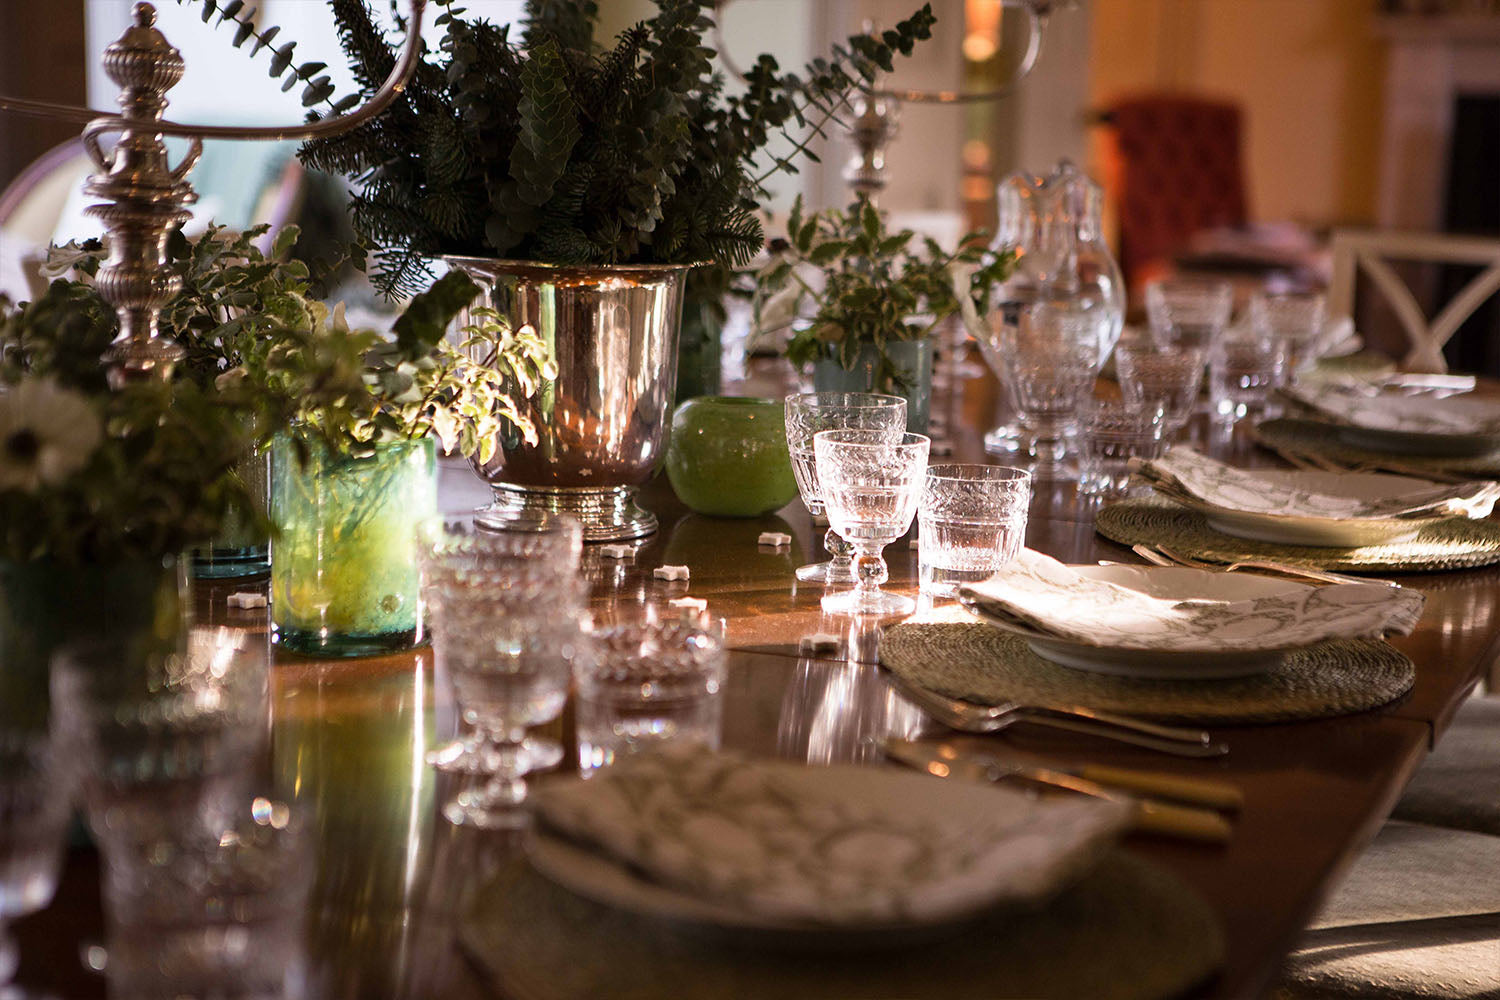 Birdie Fortescue Blog | Summer Entertaining Tips and Ideas